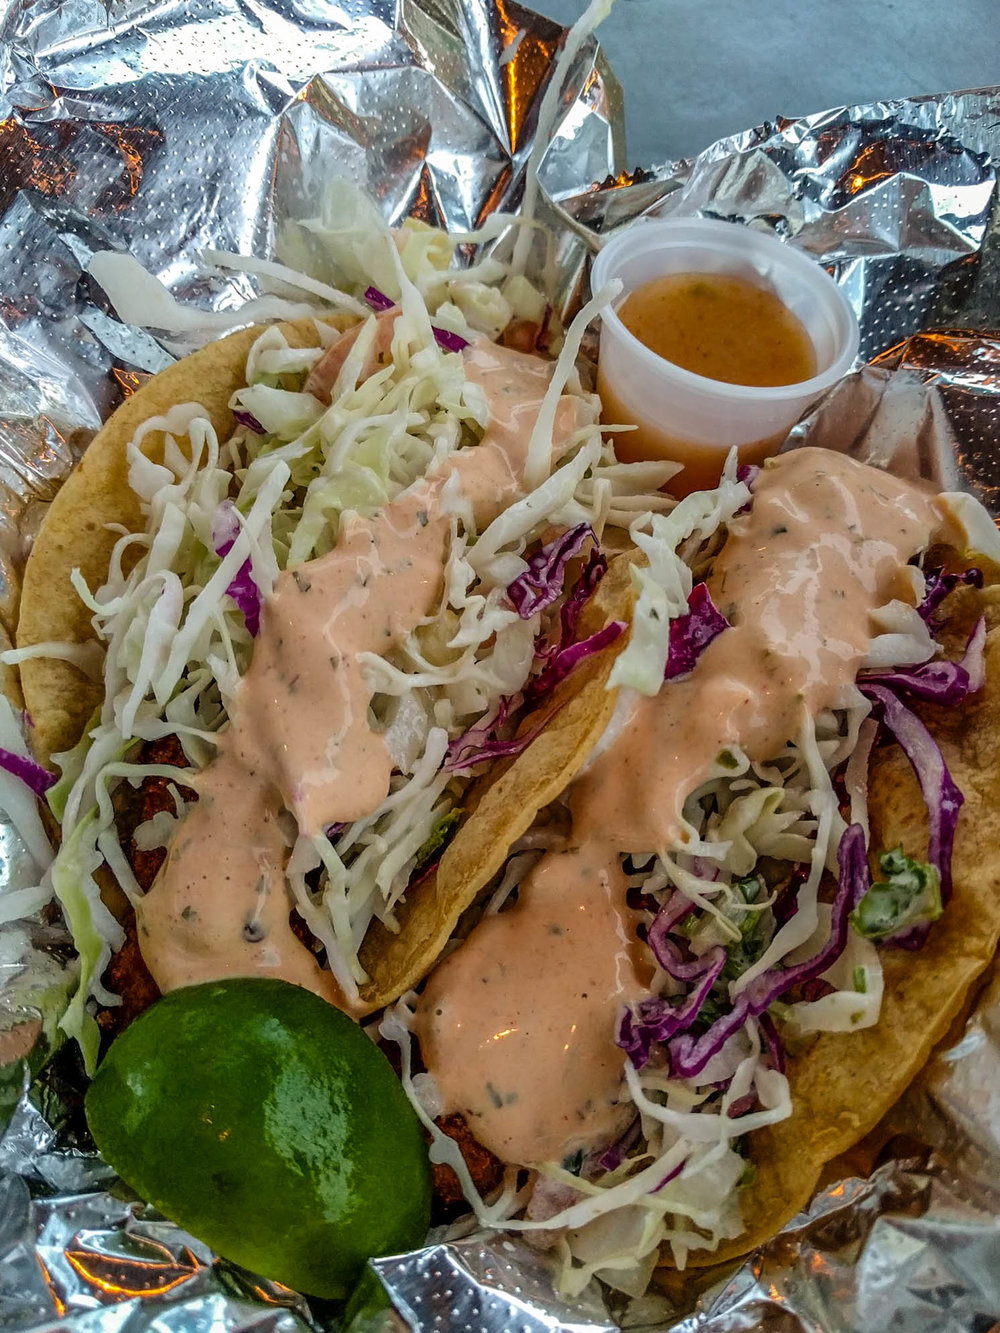 Superior fish tacos from Tresbe in Ocean Park.